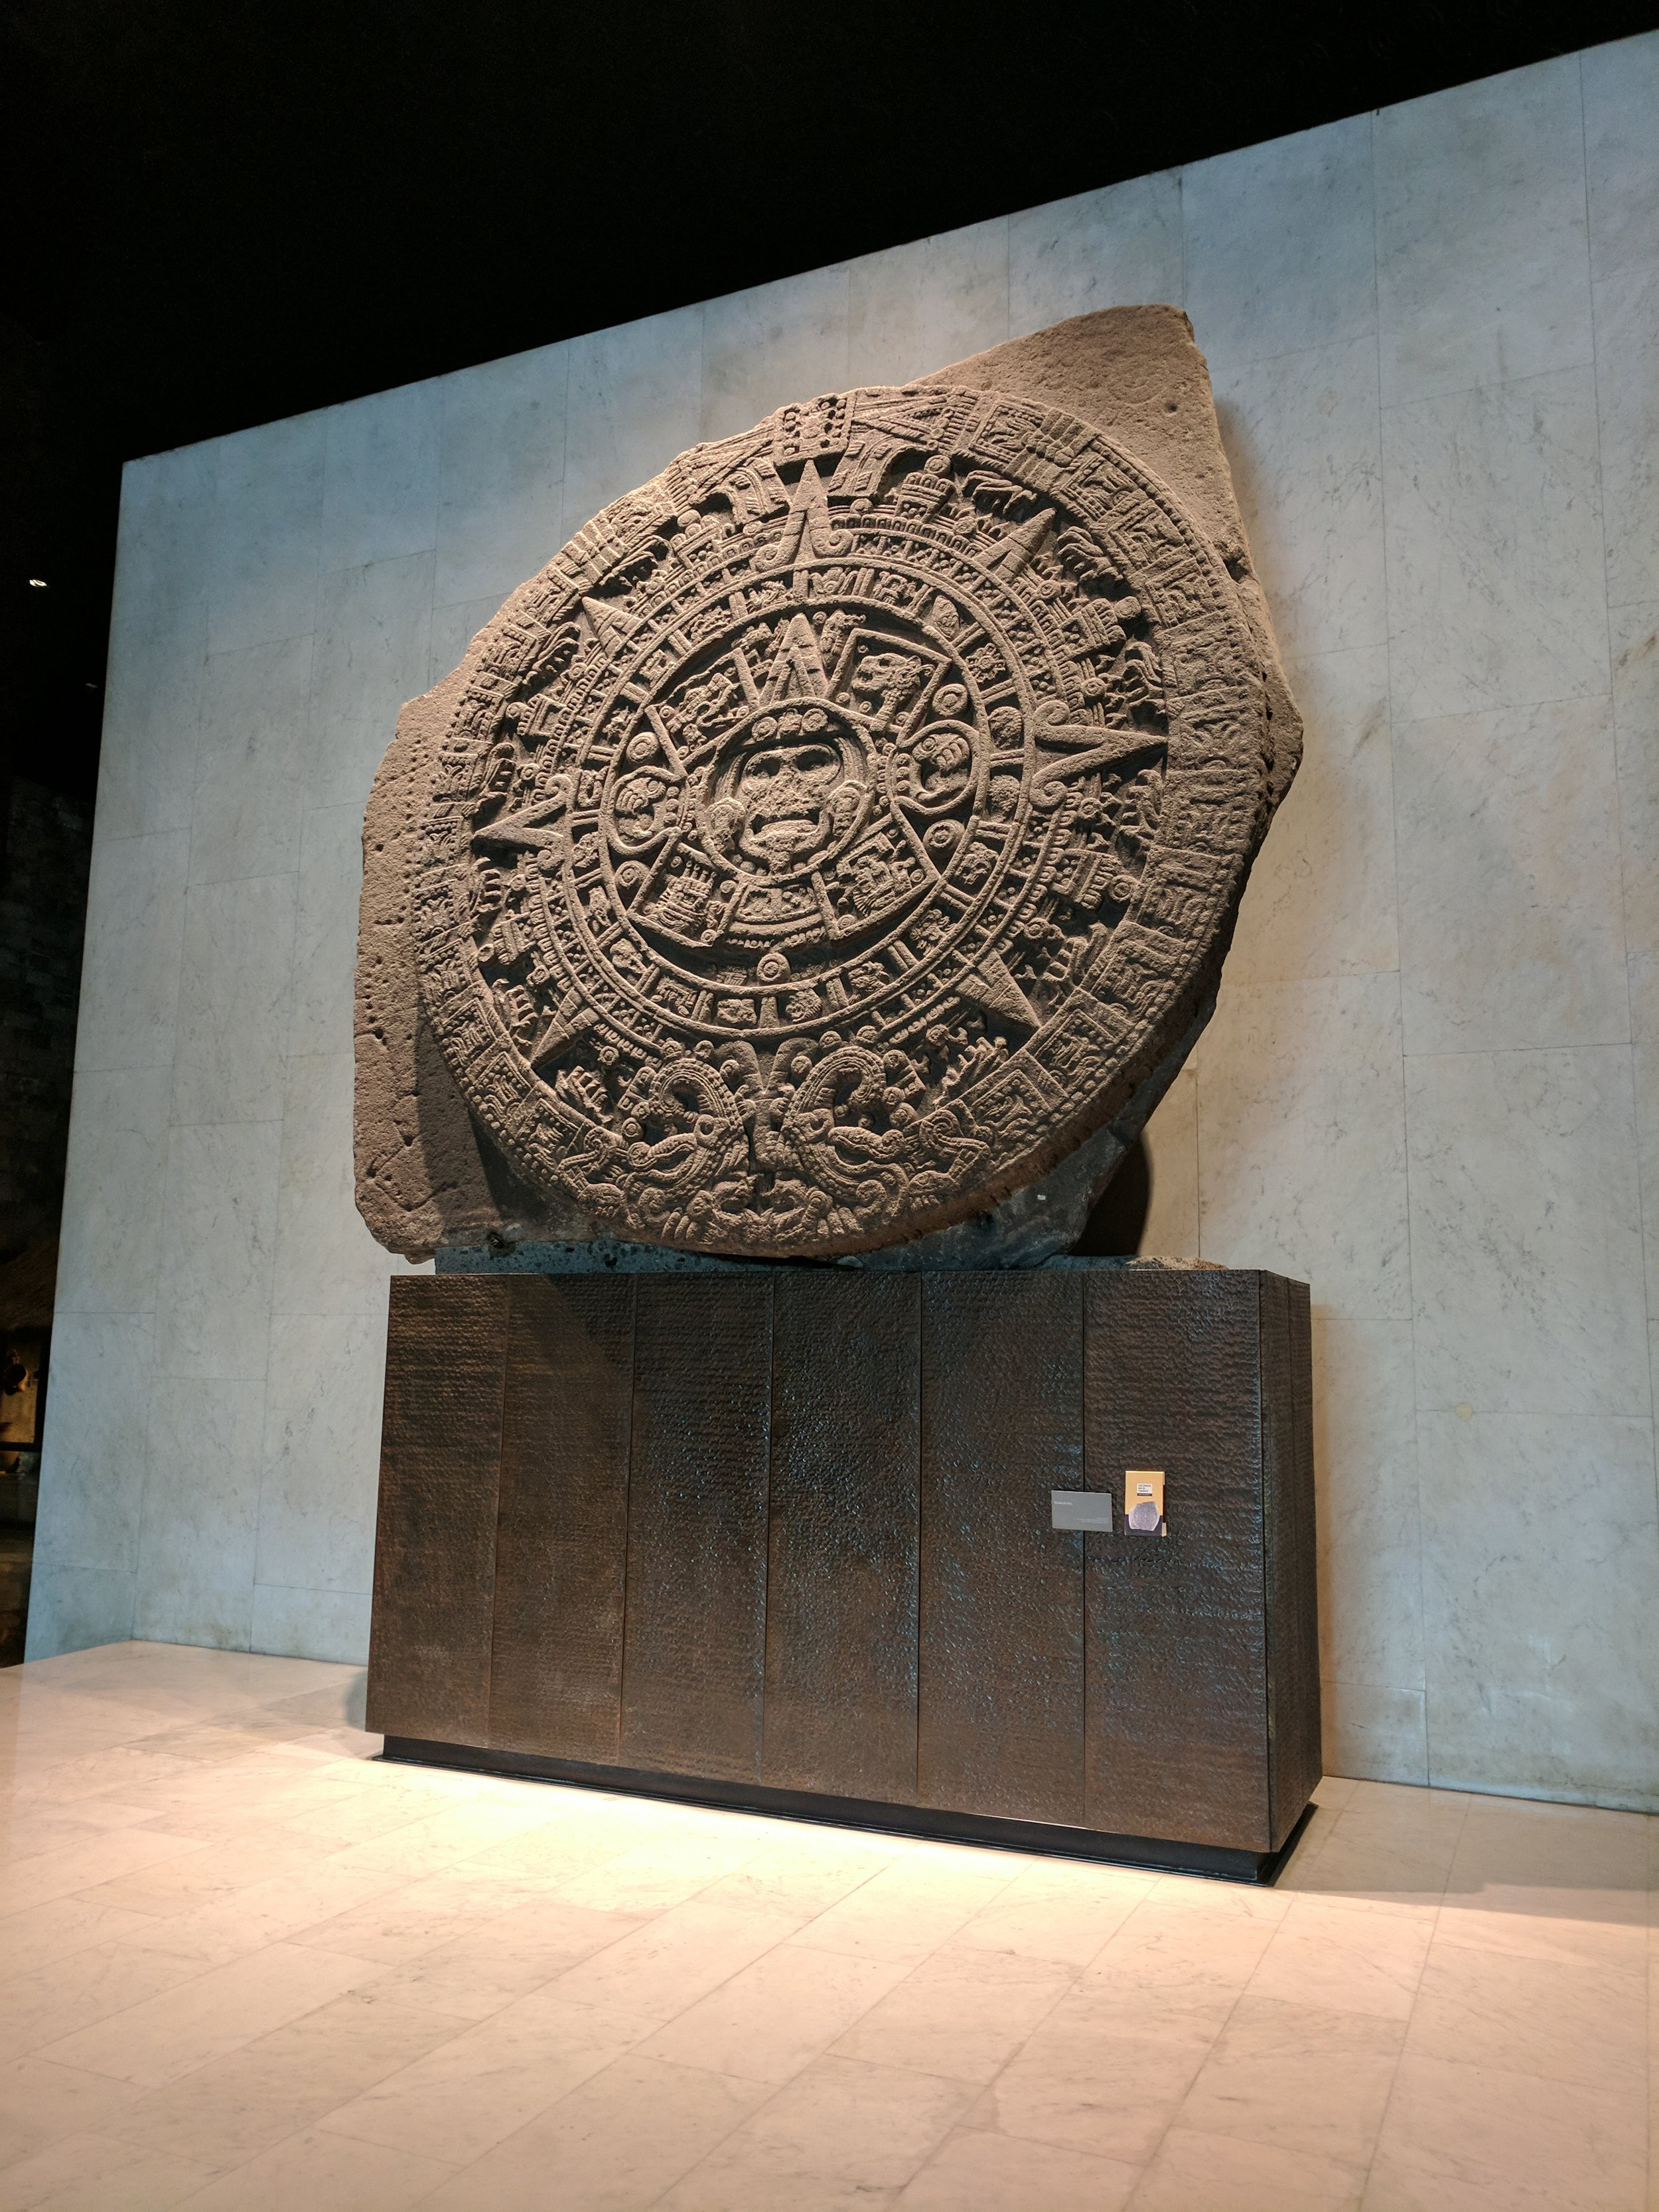 An artifact from the temple of the sun